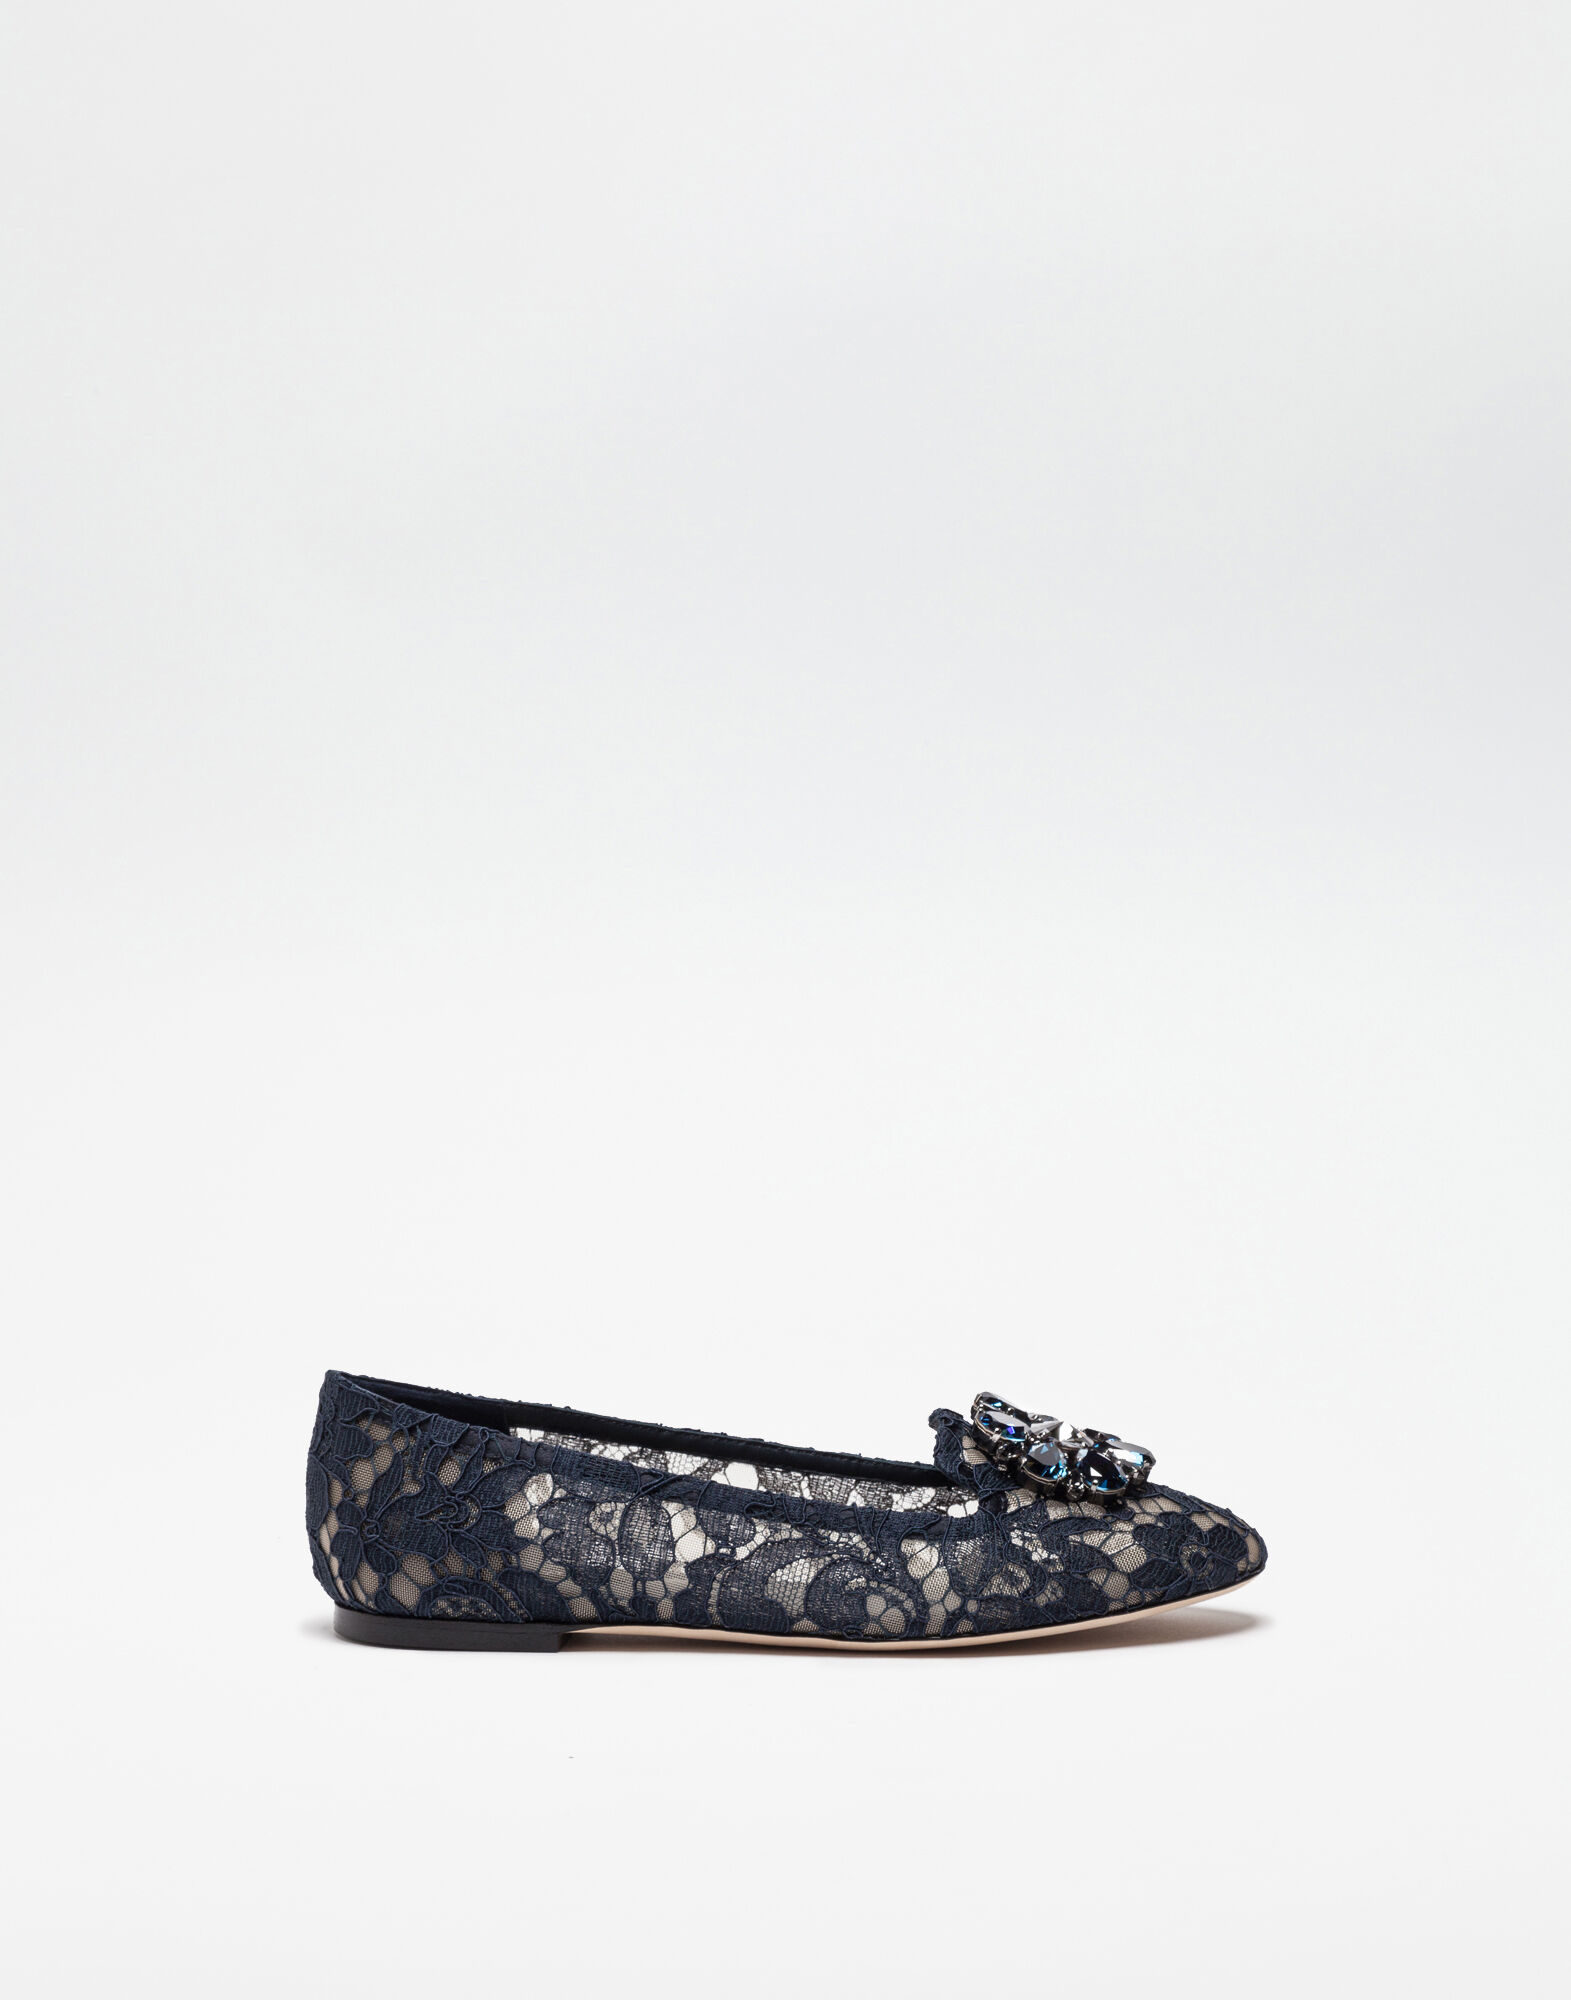 SLIPPER IN TAORMINA LACE WITH CRYSTALS